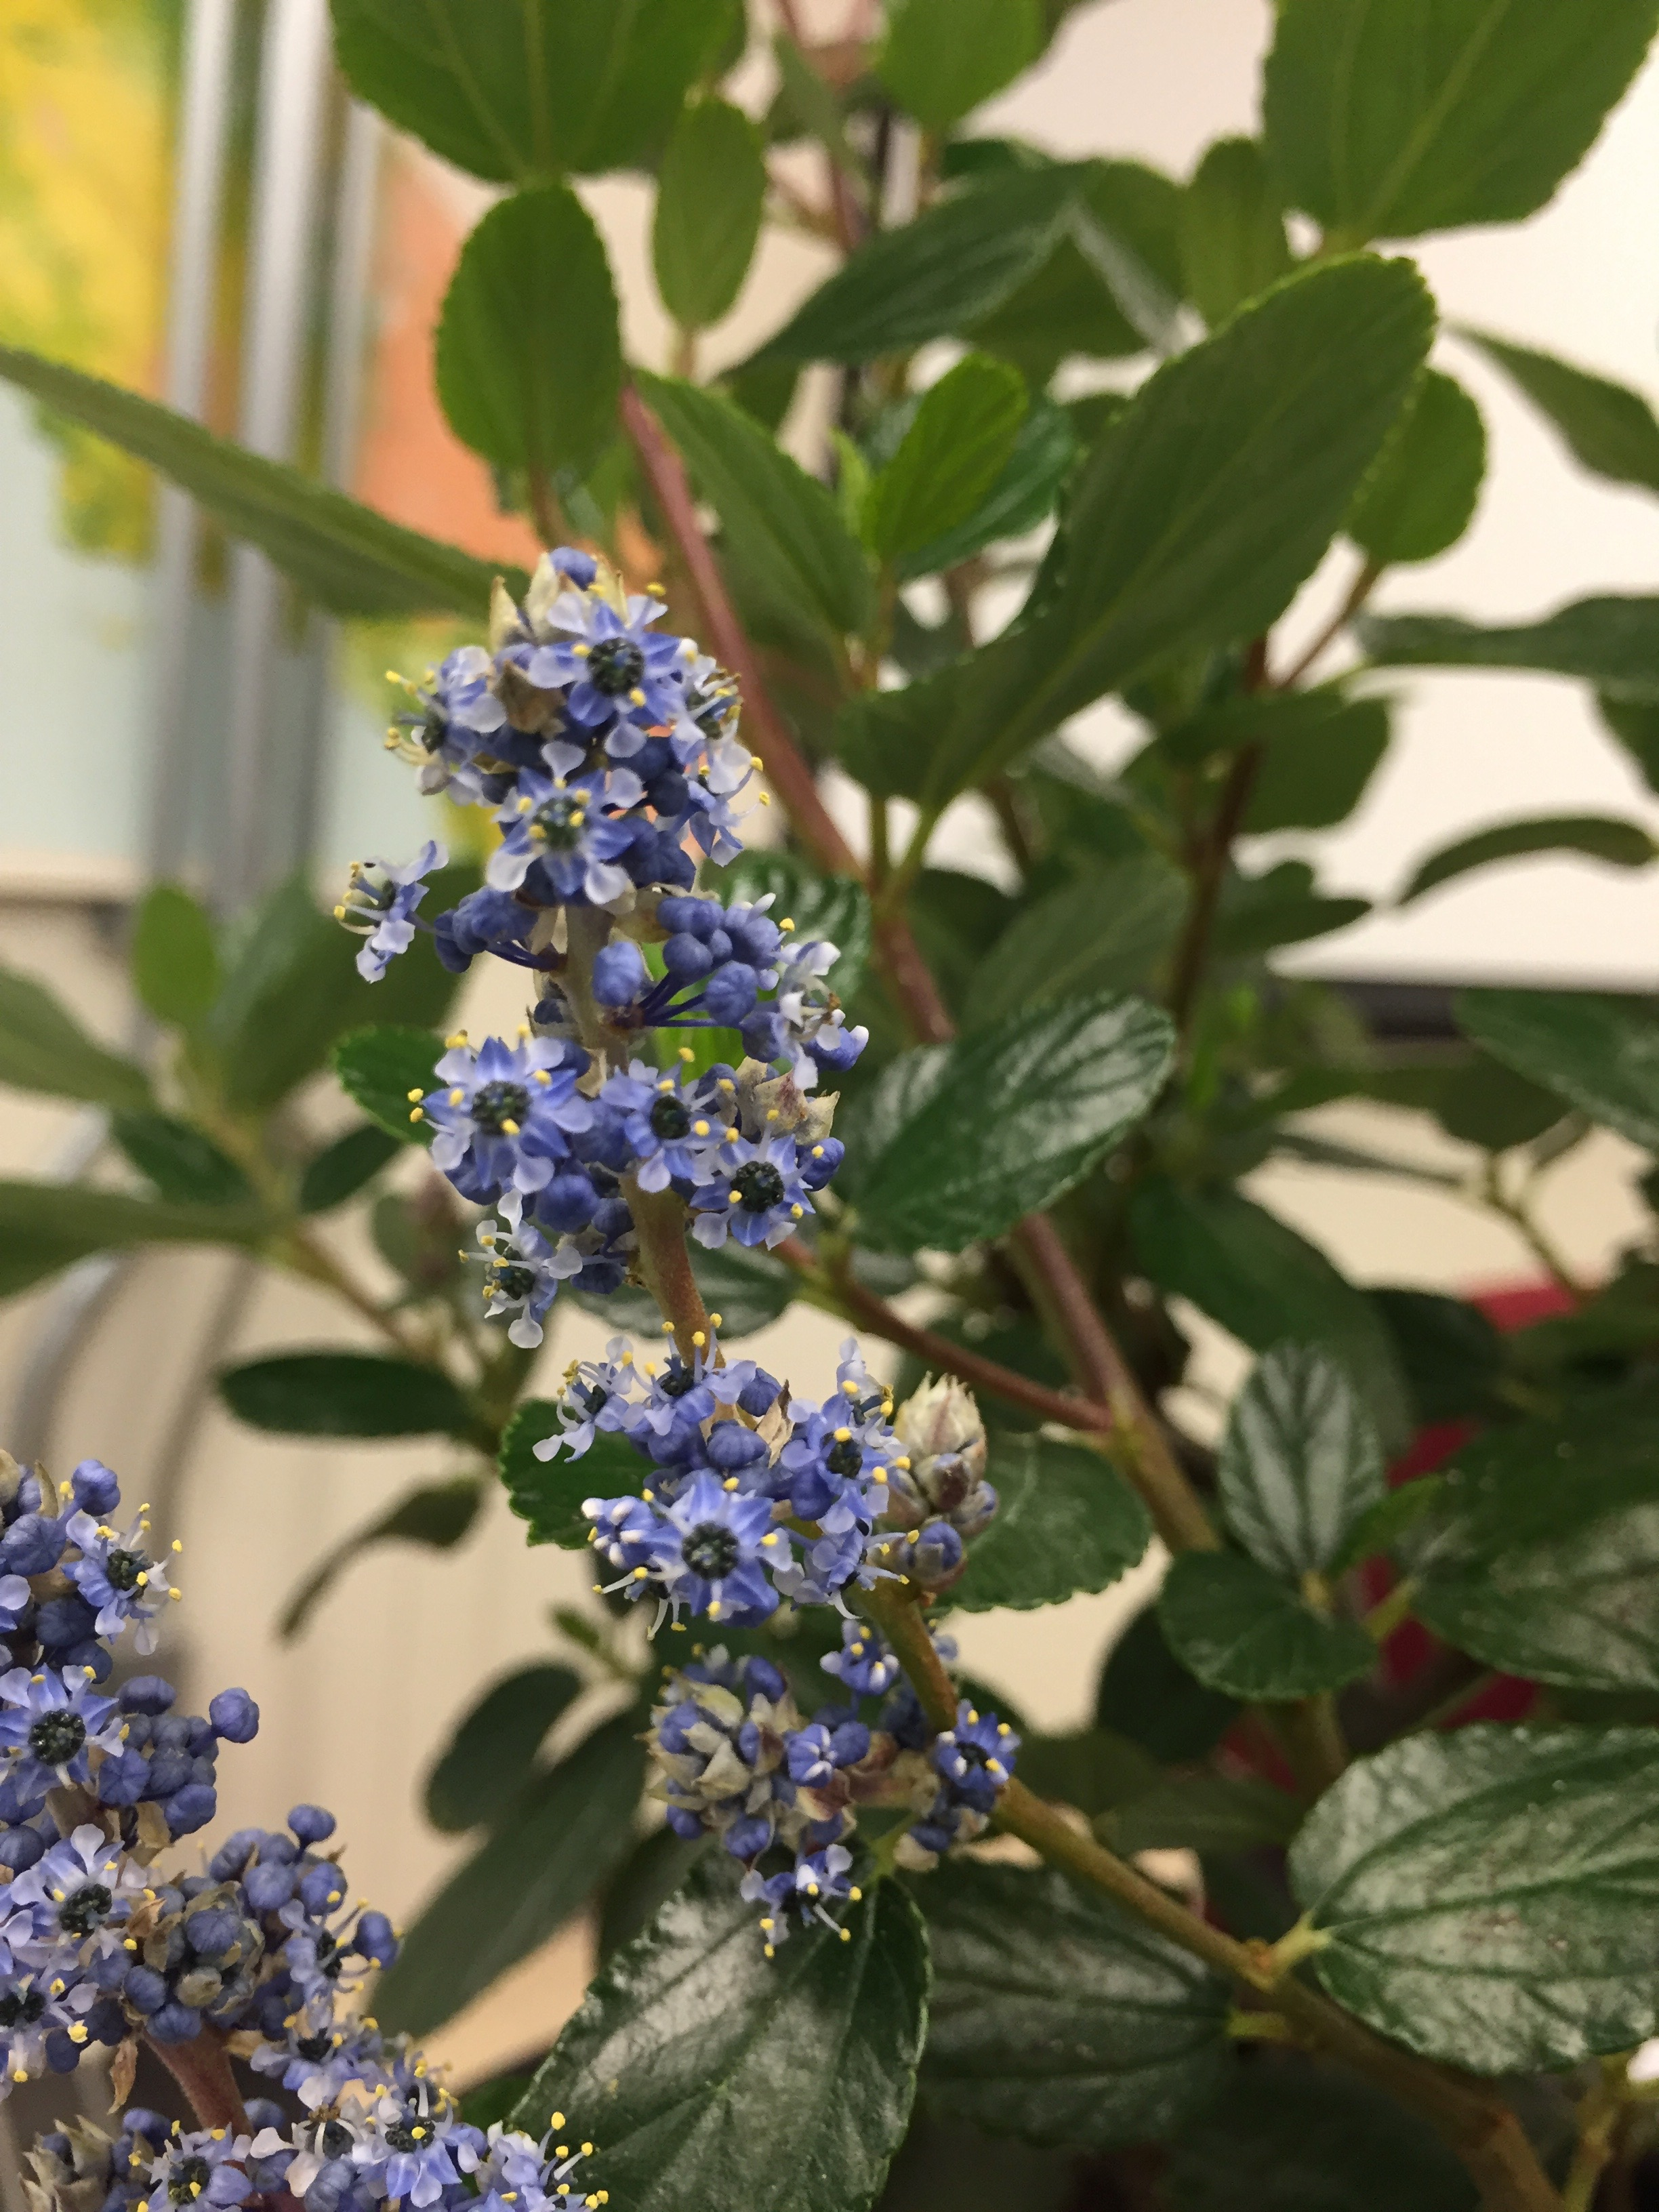 Ceanothus arboreus  'Cliff Schmidt' in class yesterday